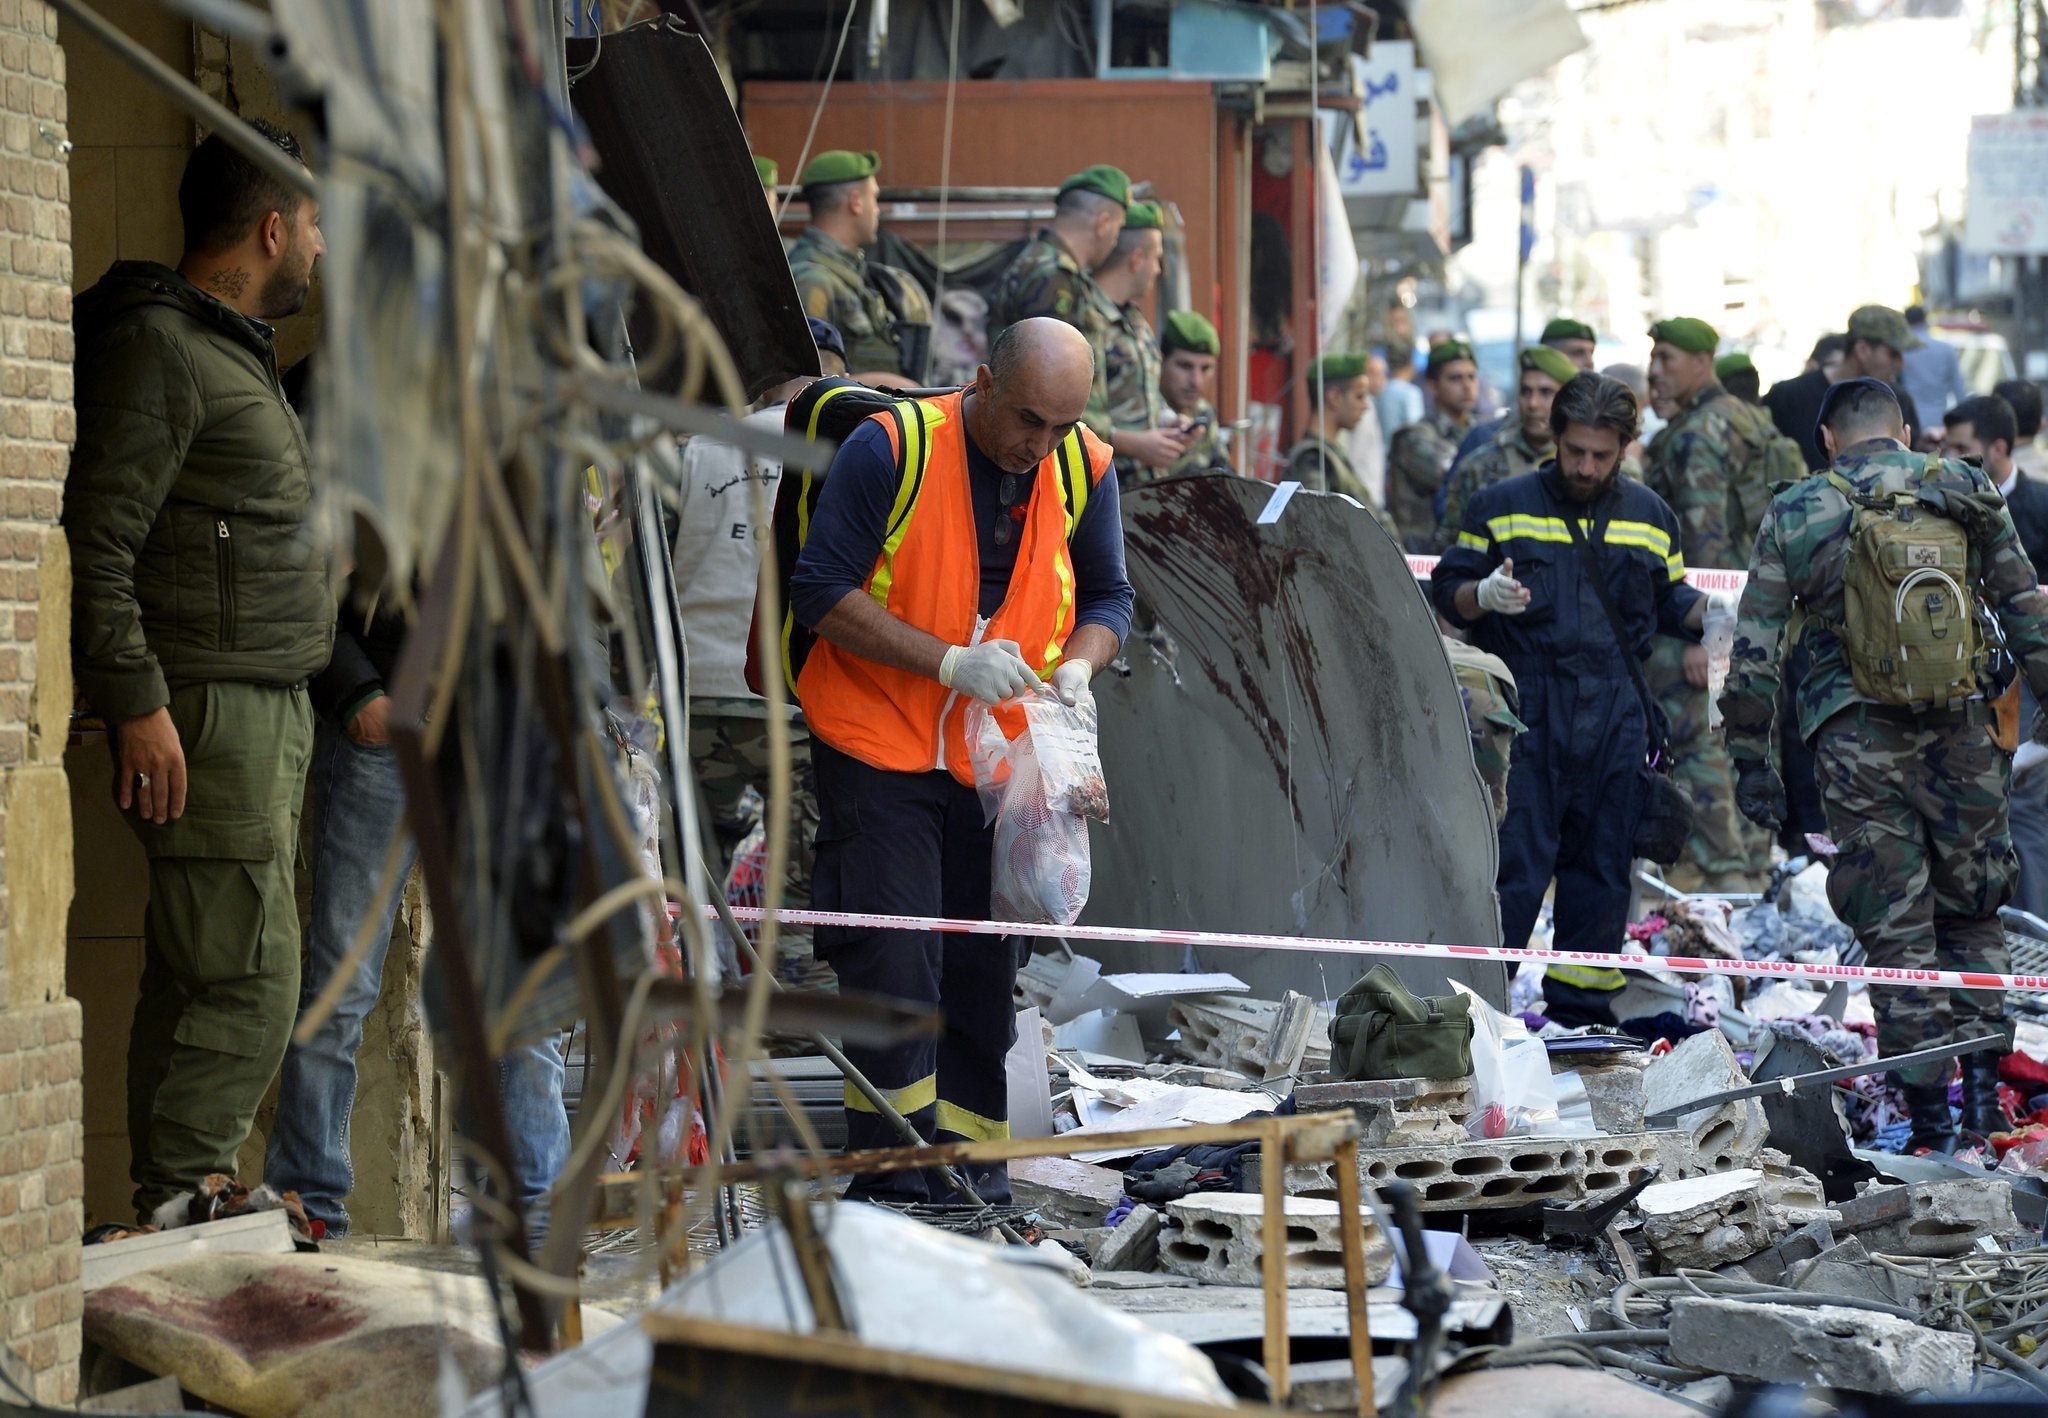 Beirut bombing: The other terrorist attack